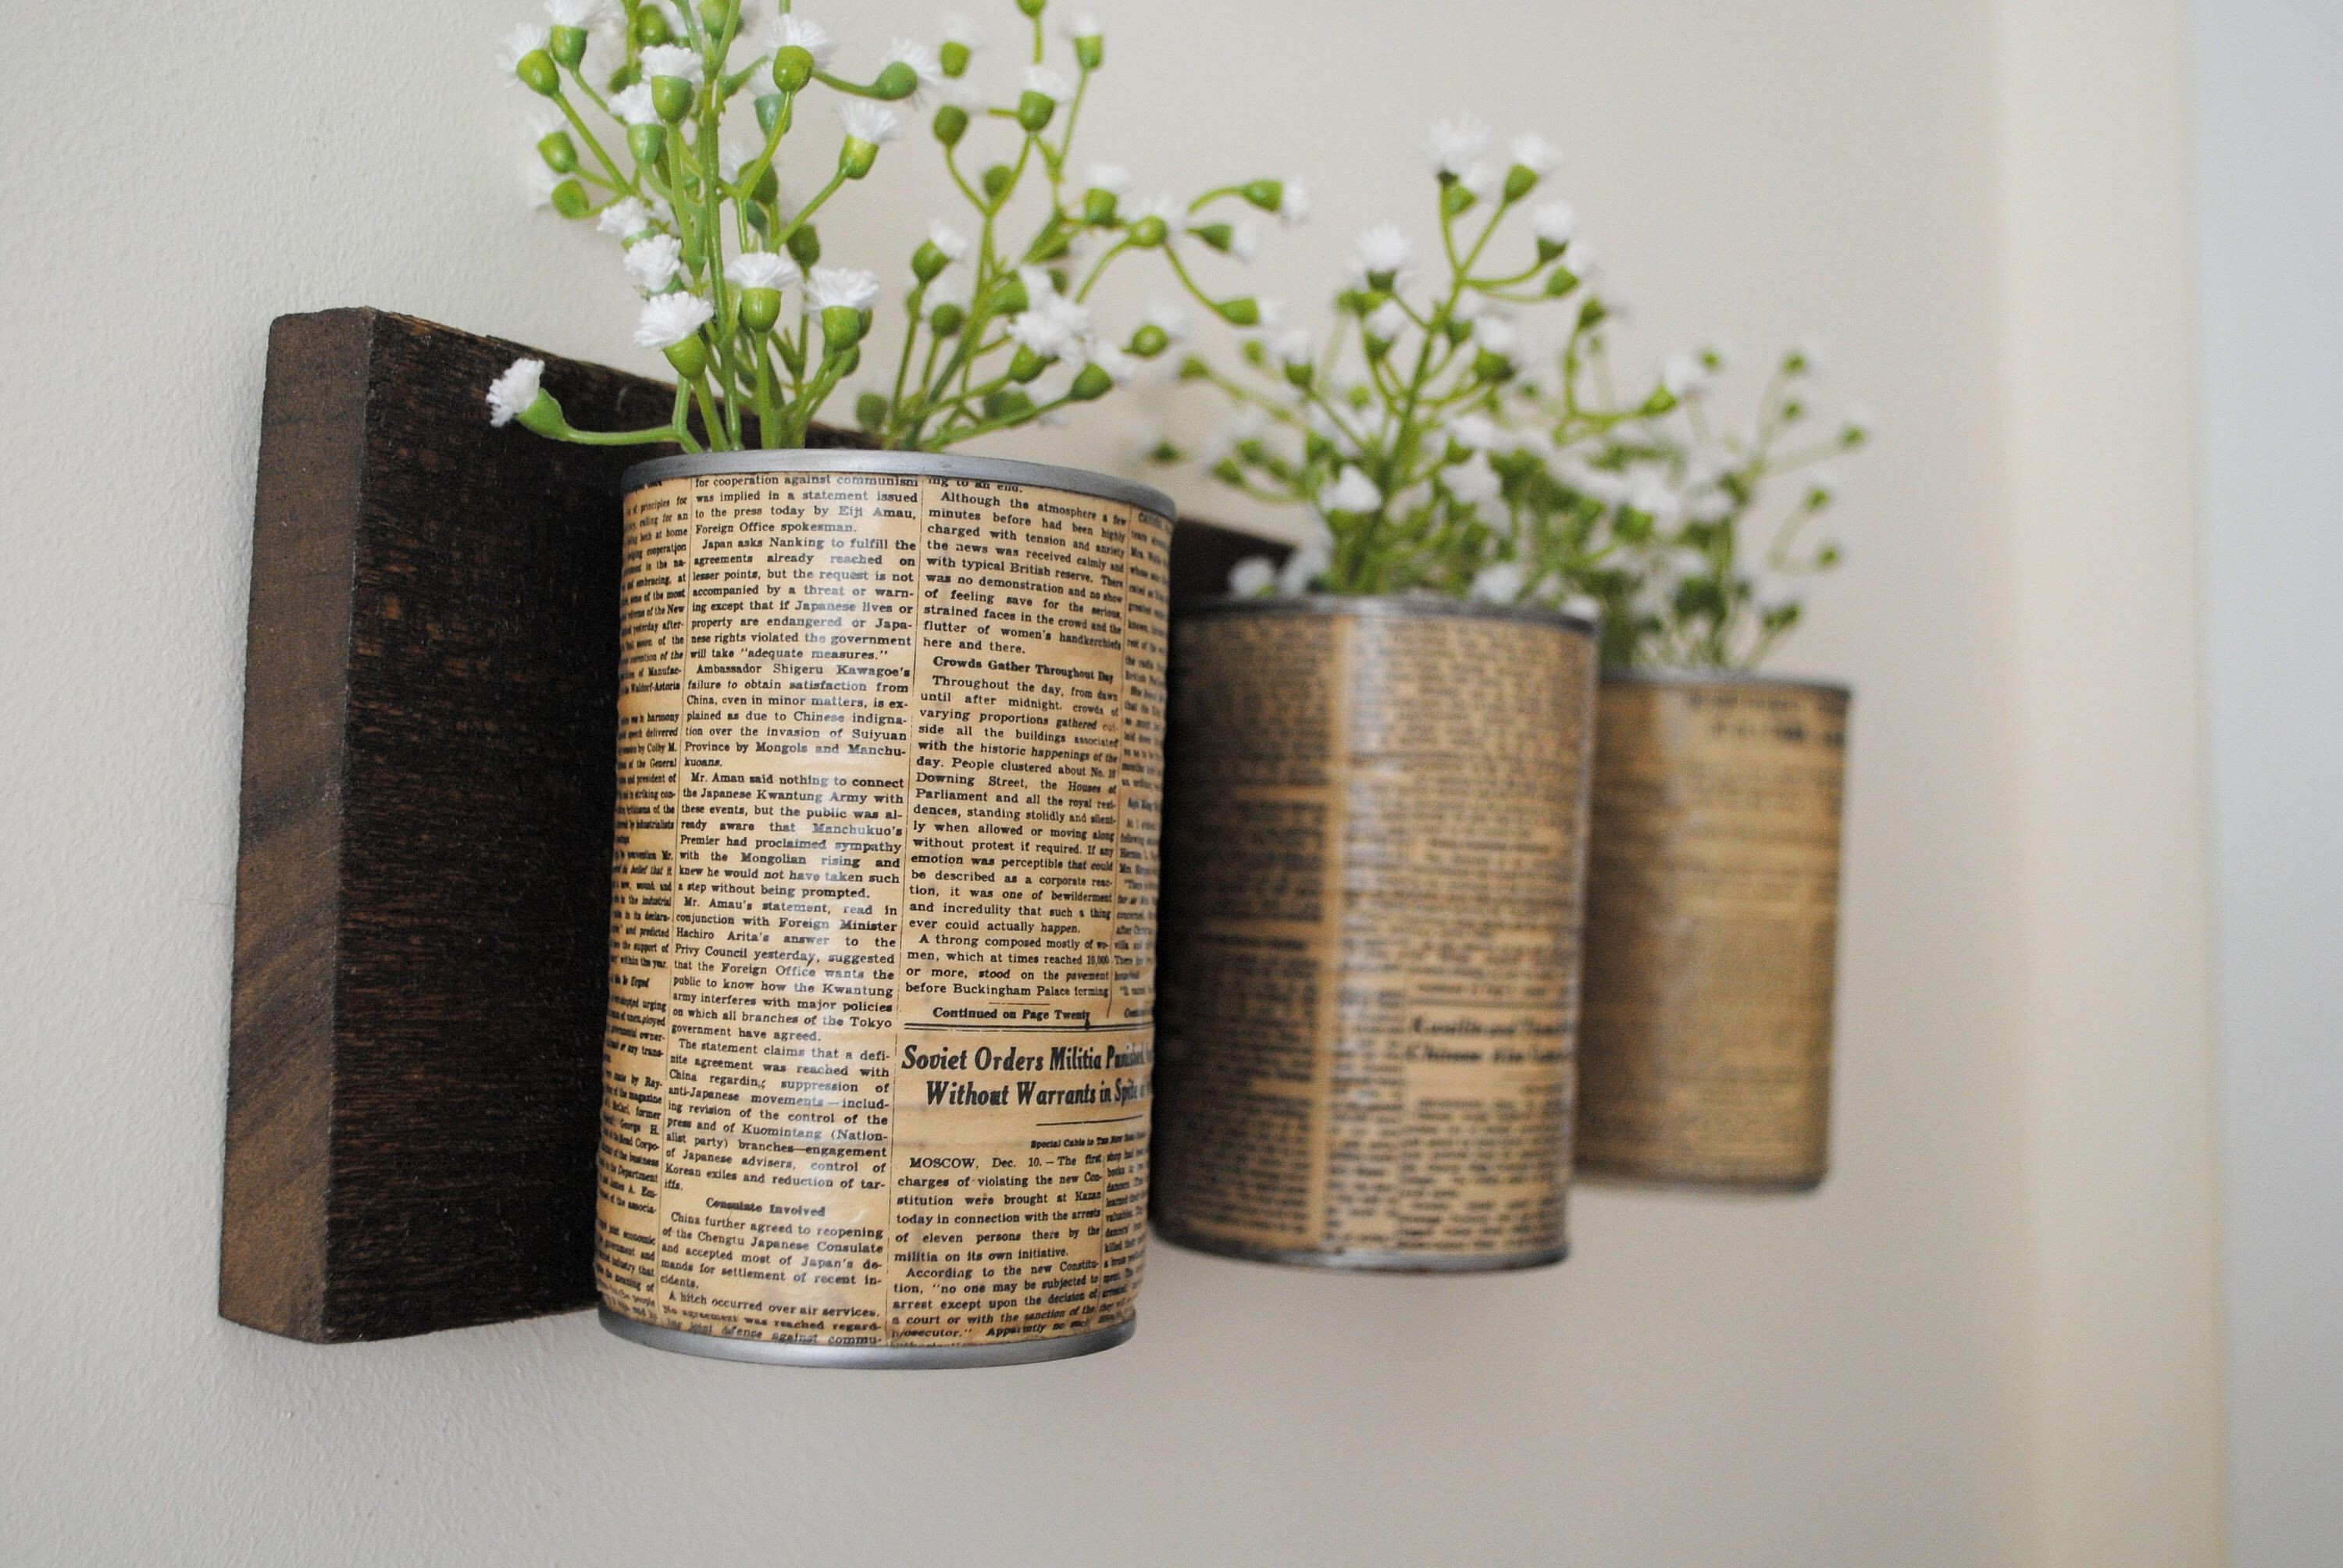 wall vase ideas of wooden wall vase new tall vase centerpiece ideas vases flowers in for wooden wall vase inspirational rustic wall vase inspirational easy wall vase vertical visual of woode